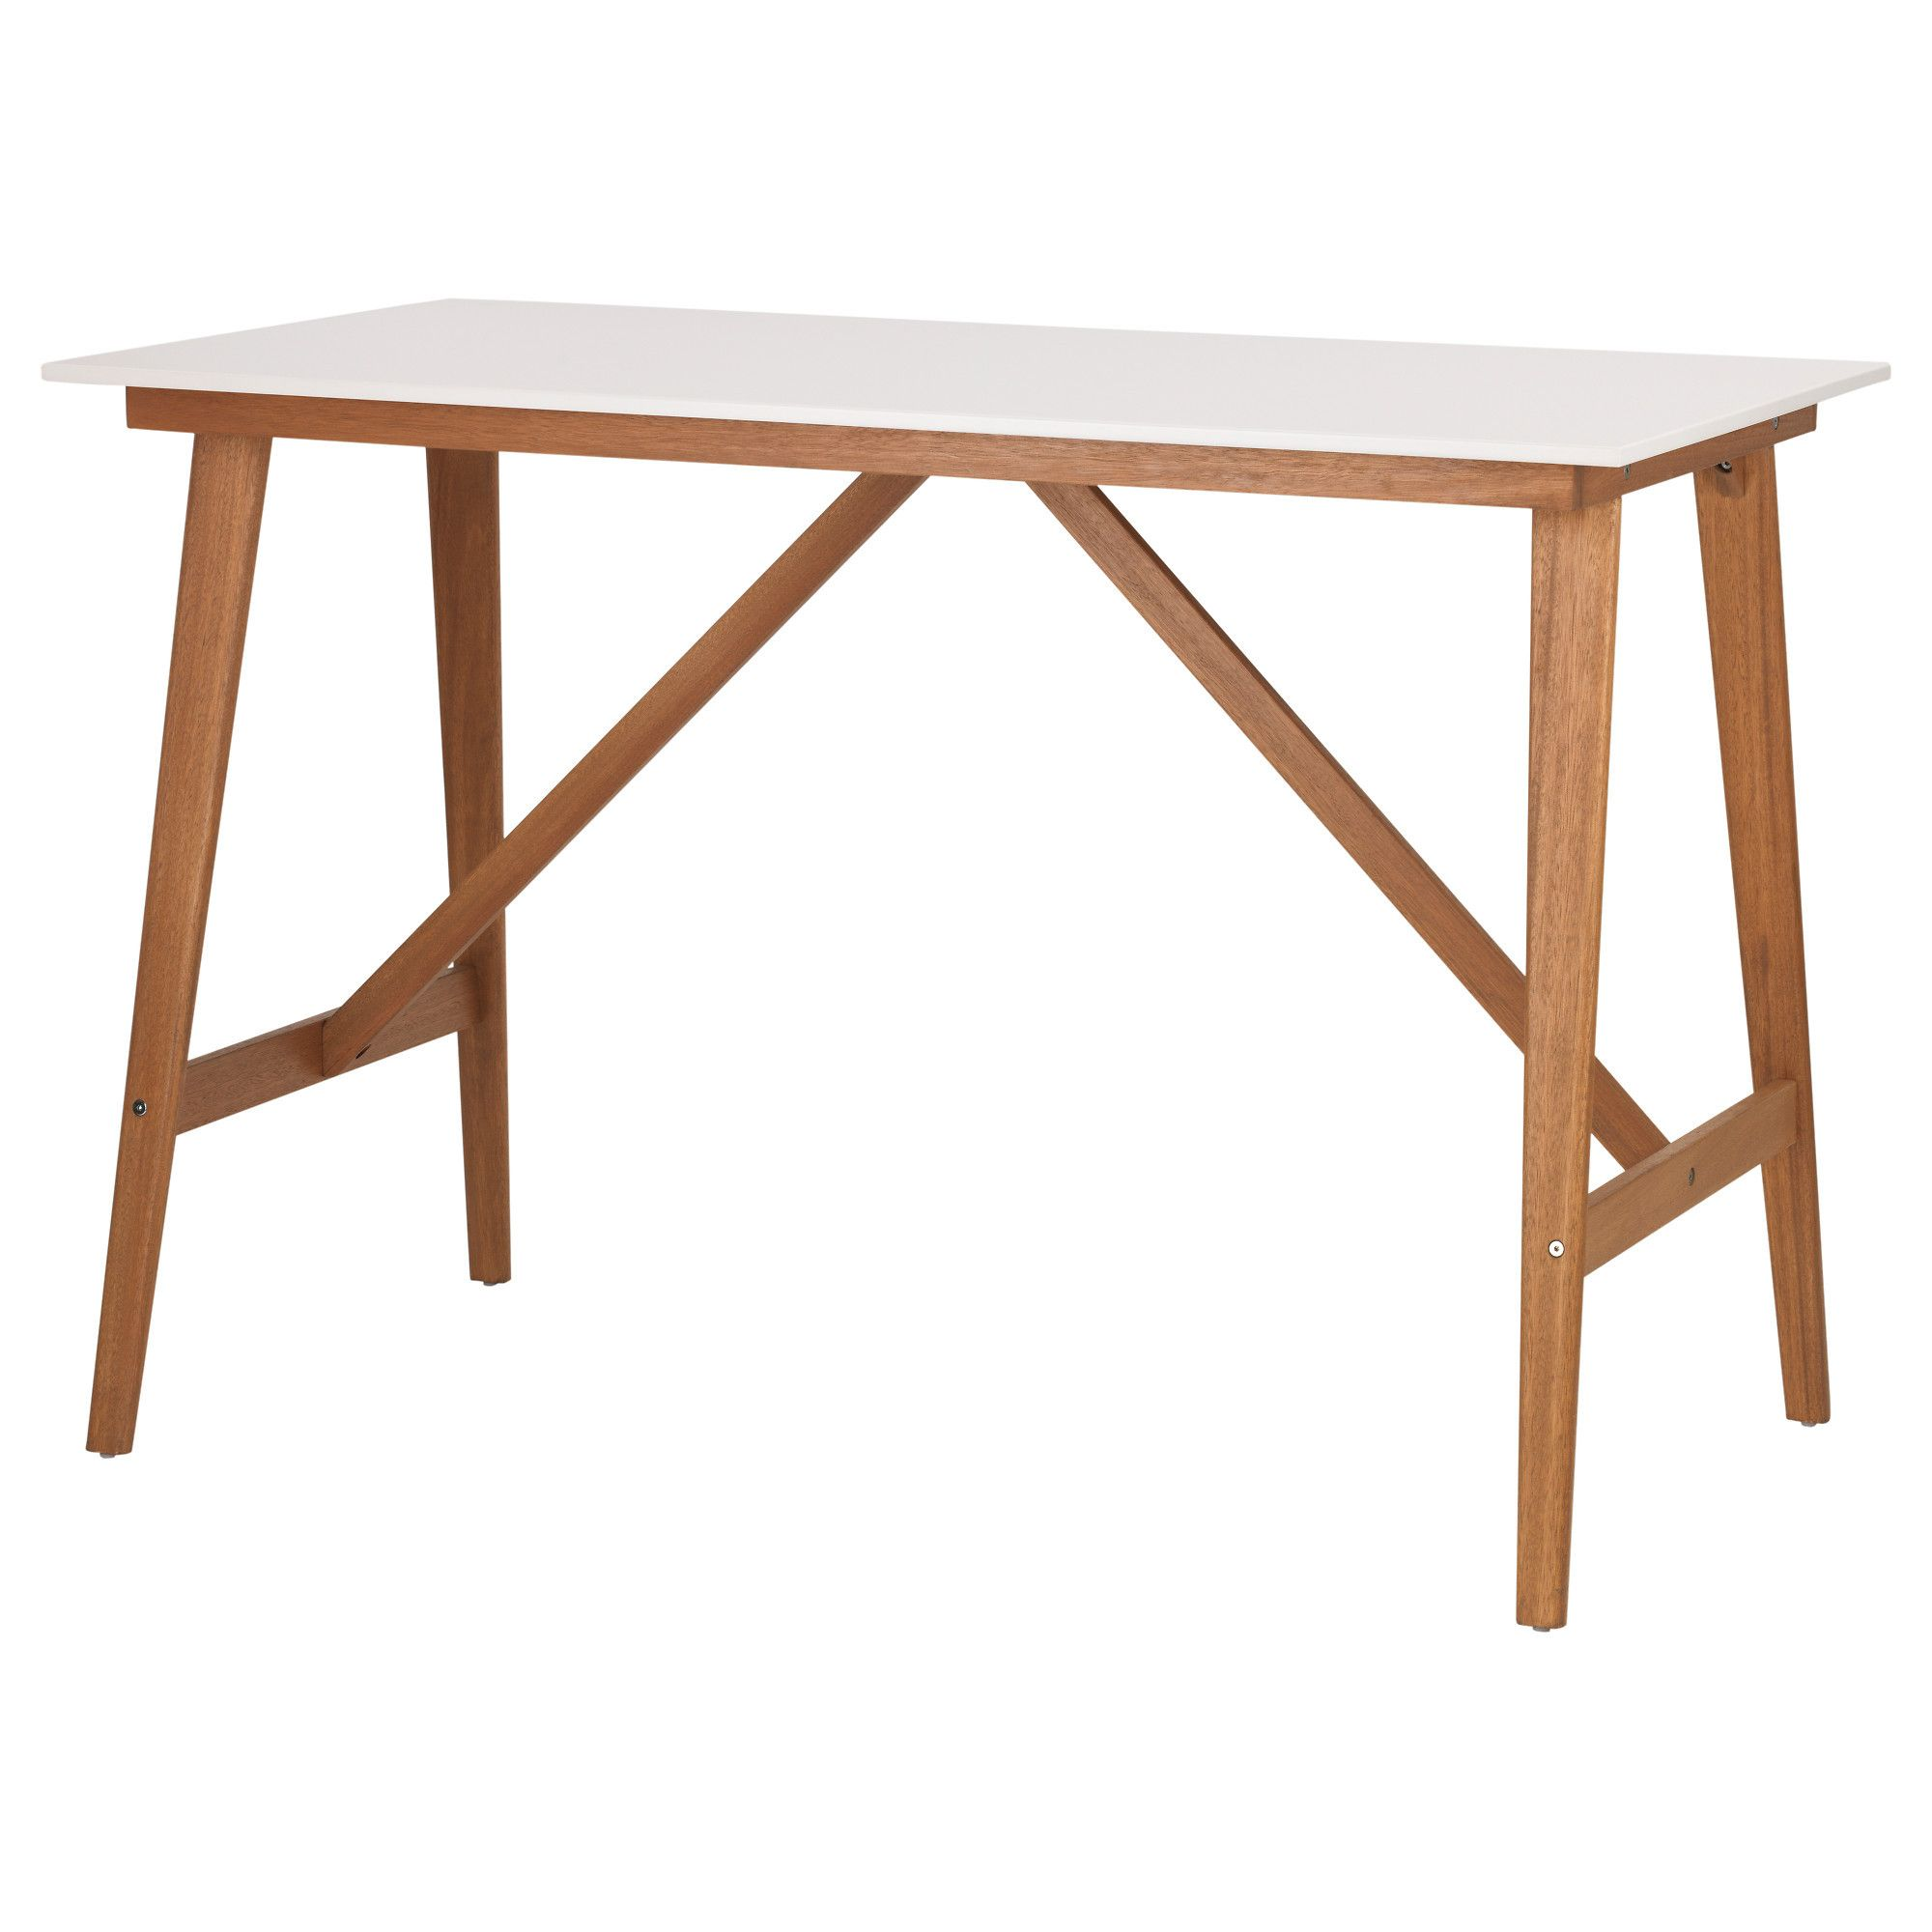 Table Pliante Ikea Norden Affordable Fabulous Trendy Cheap Table Avec Fanbyn Bar Table White 0520492 Pe642206 S5 Bar Table Ikea White Bar Table Pub Table Sets